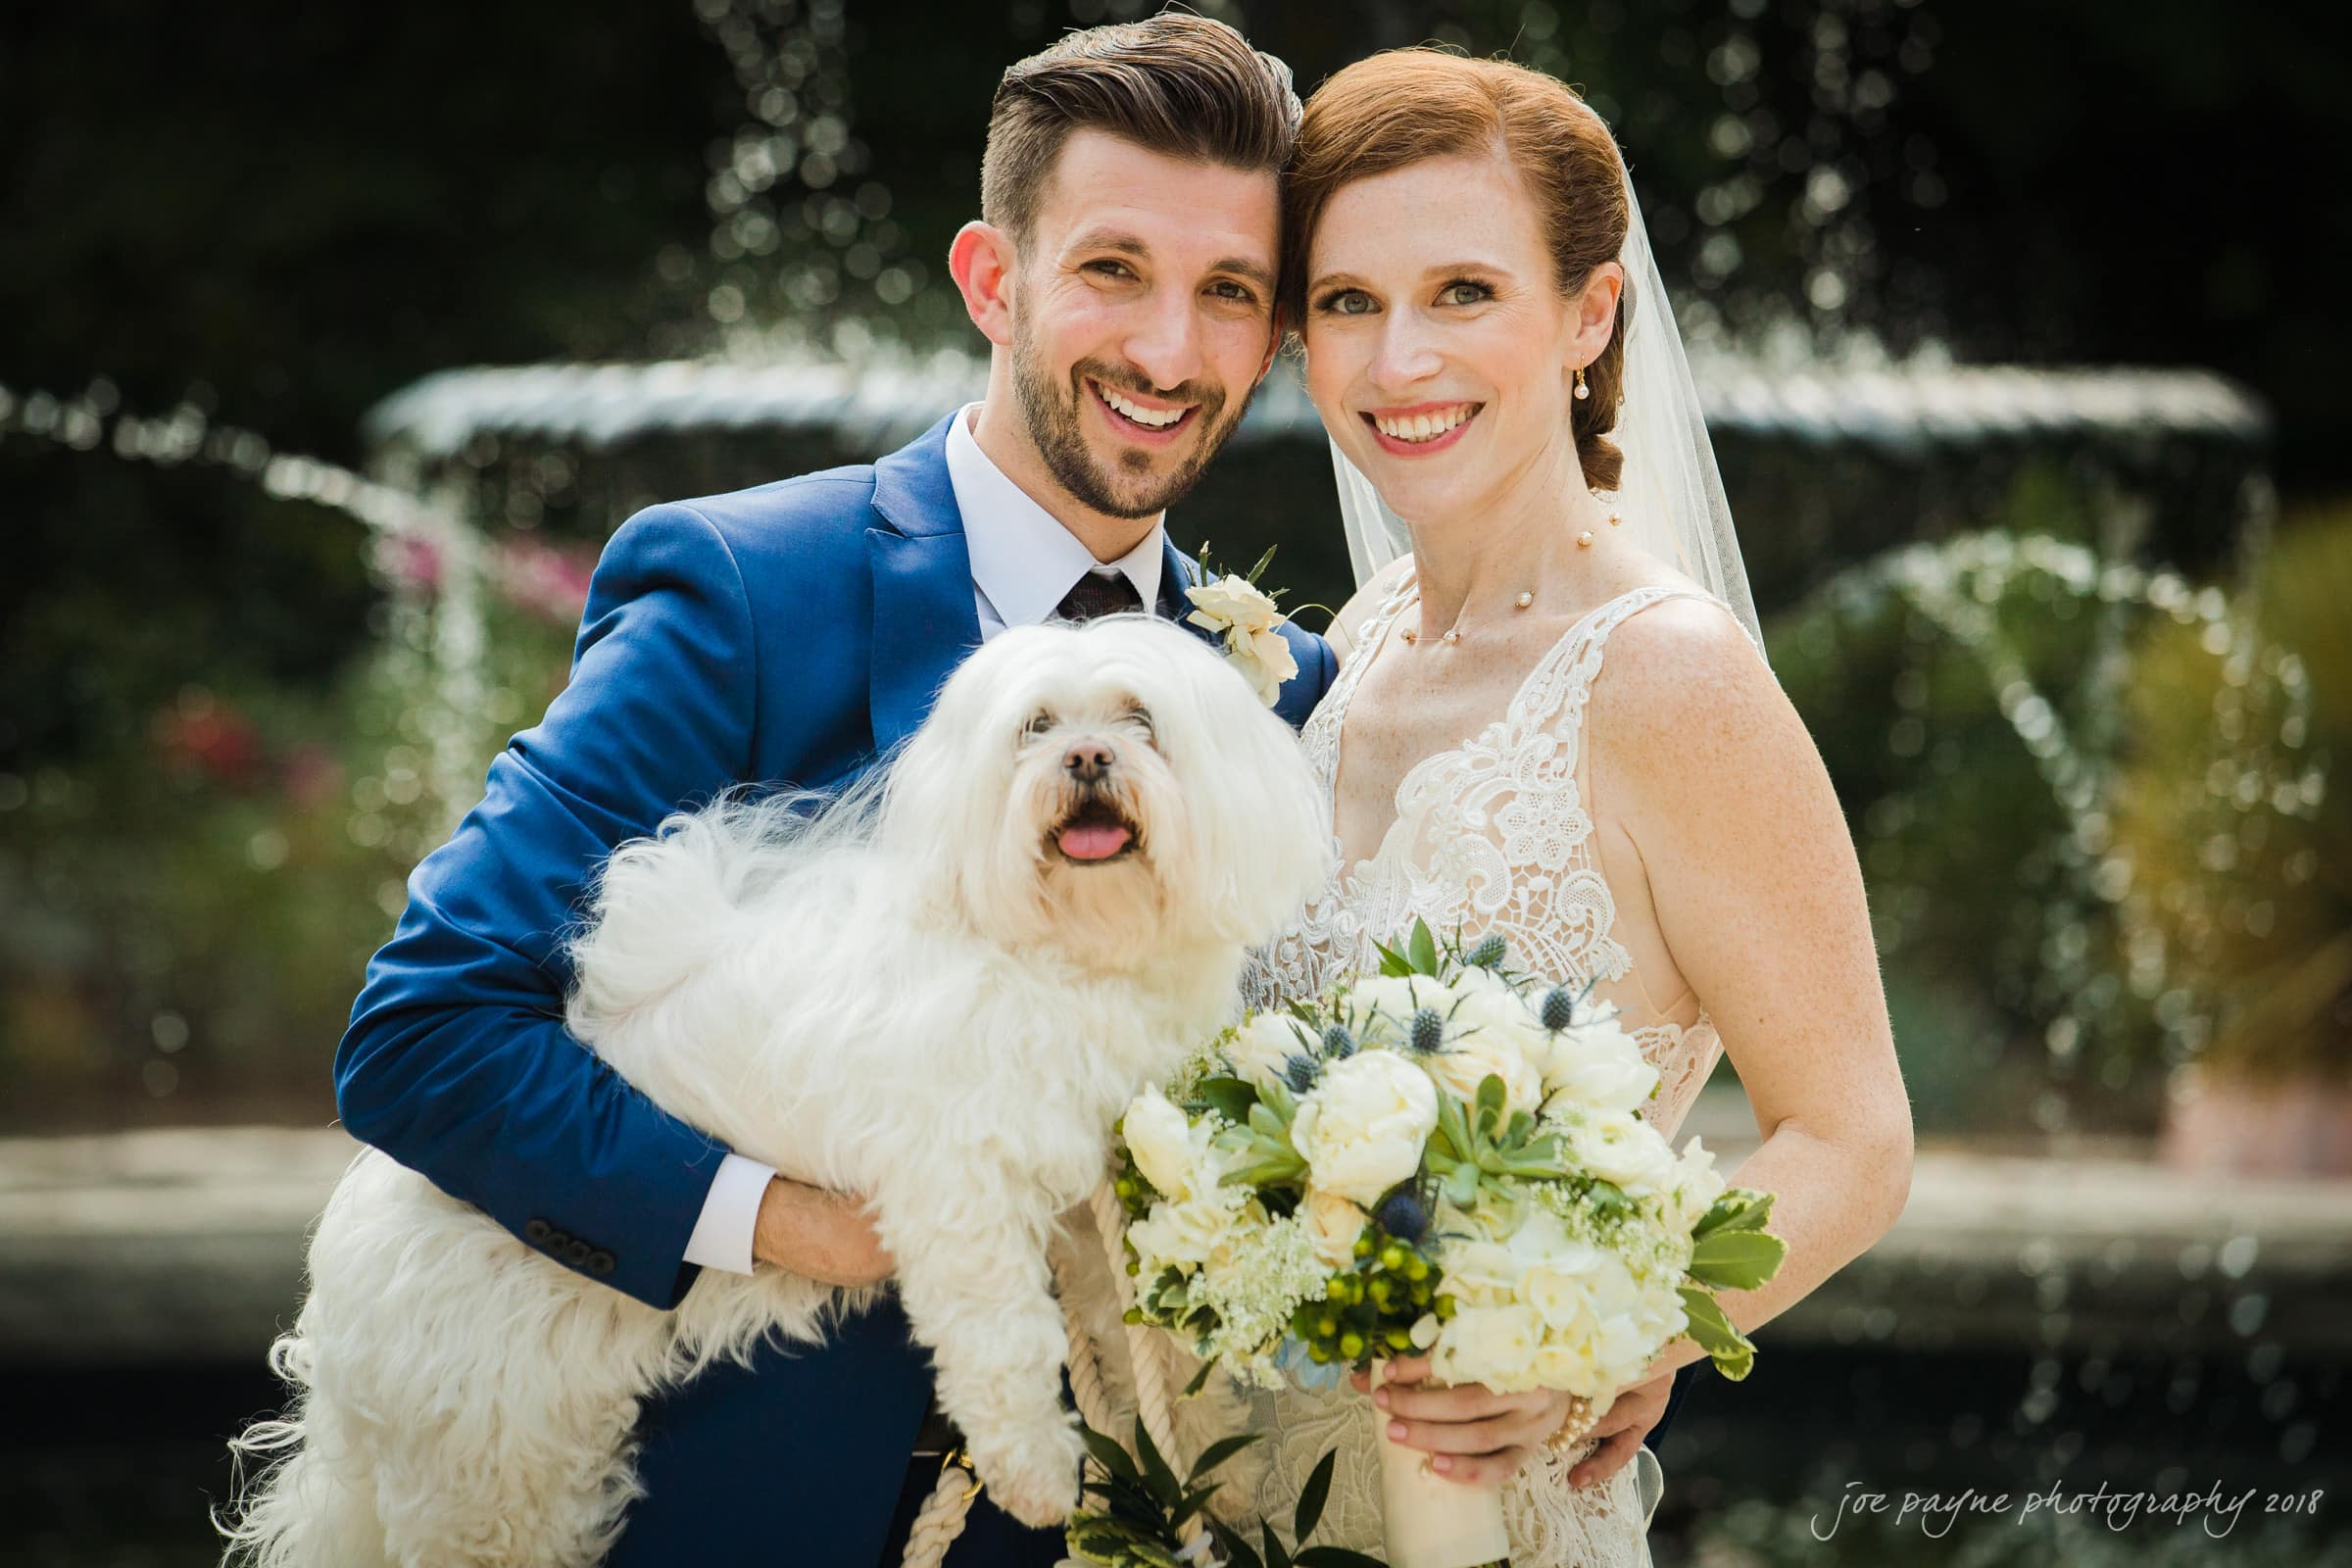 Duke Gardens Wedding Photo - Bride and Groom and Dog at Roney Fountain